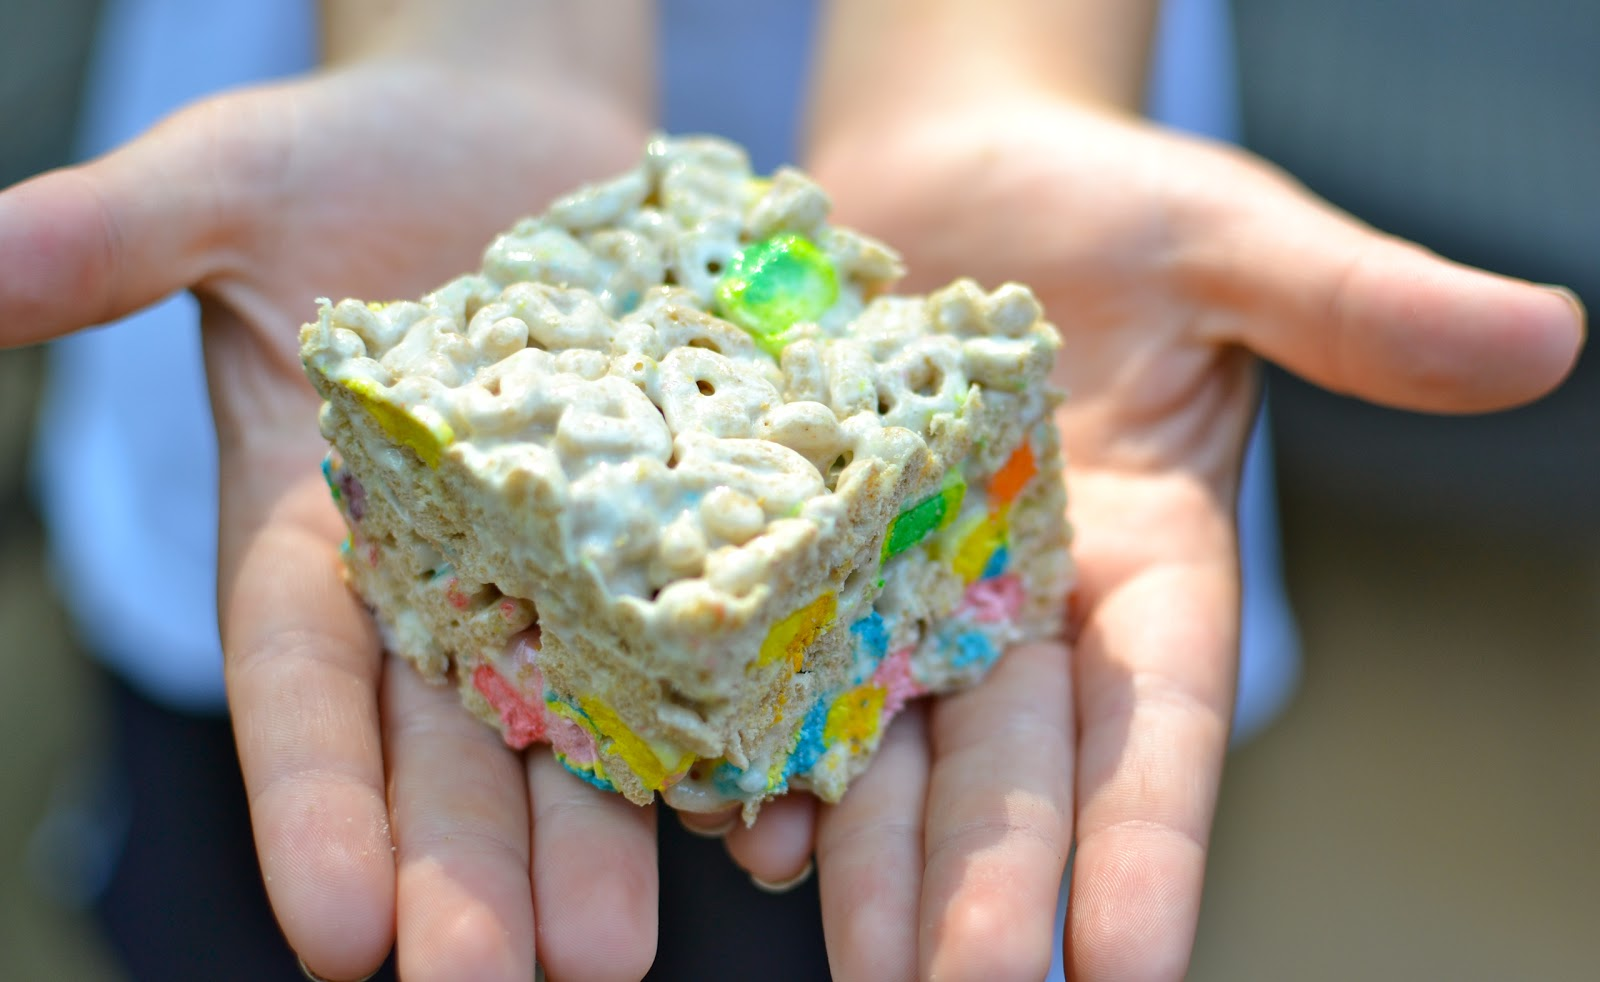 Southern Soul: Marshmallow Krispy Treats Used for Bribery!